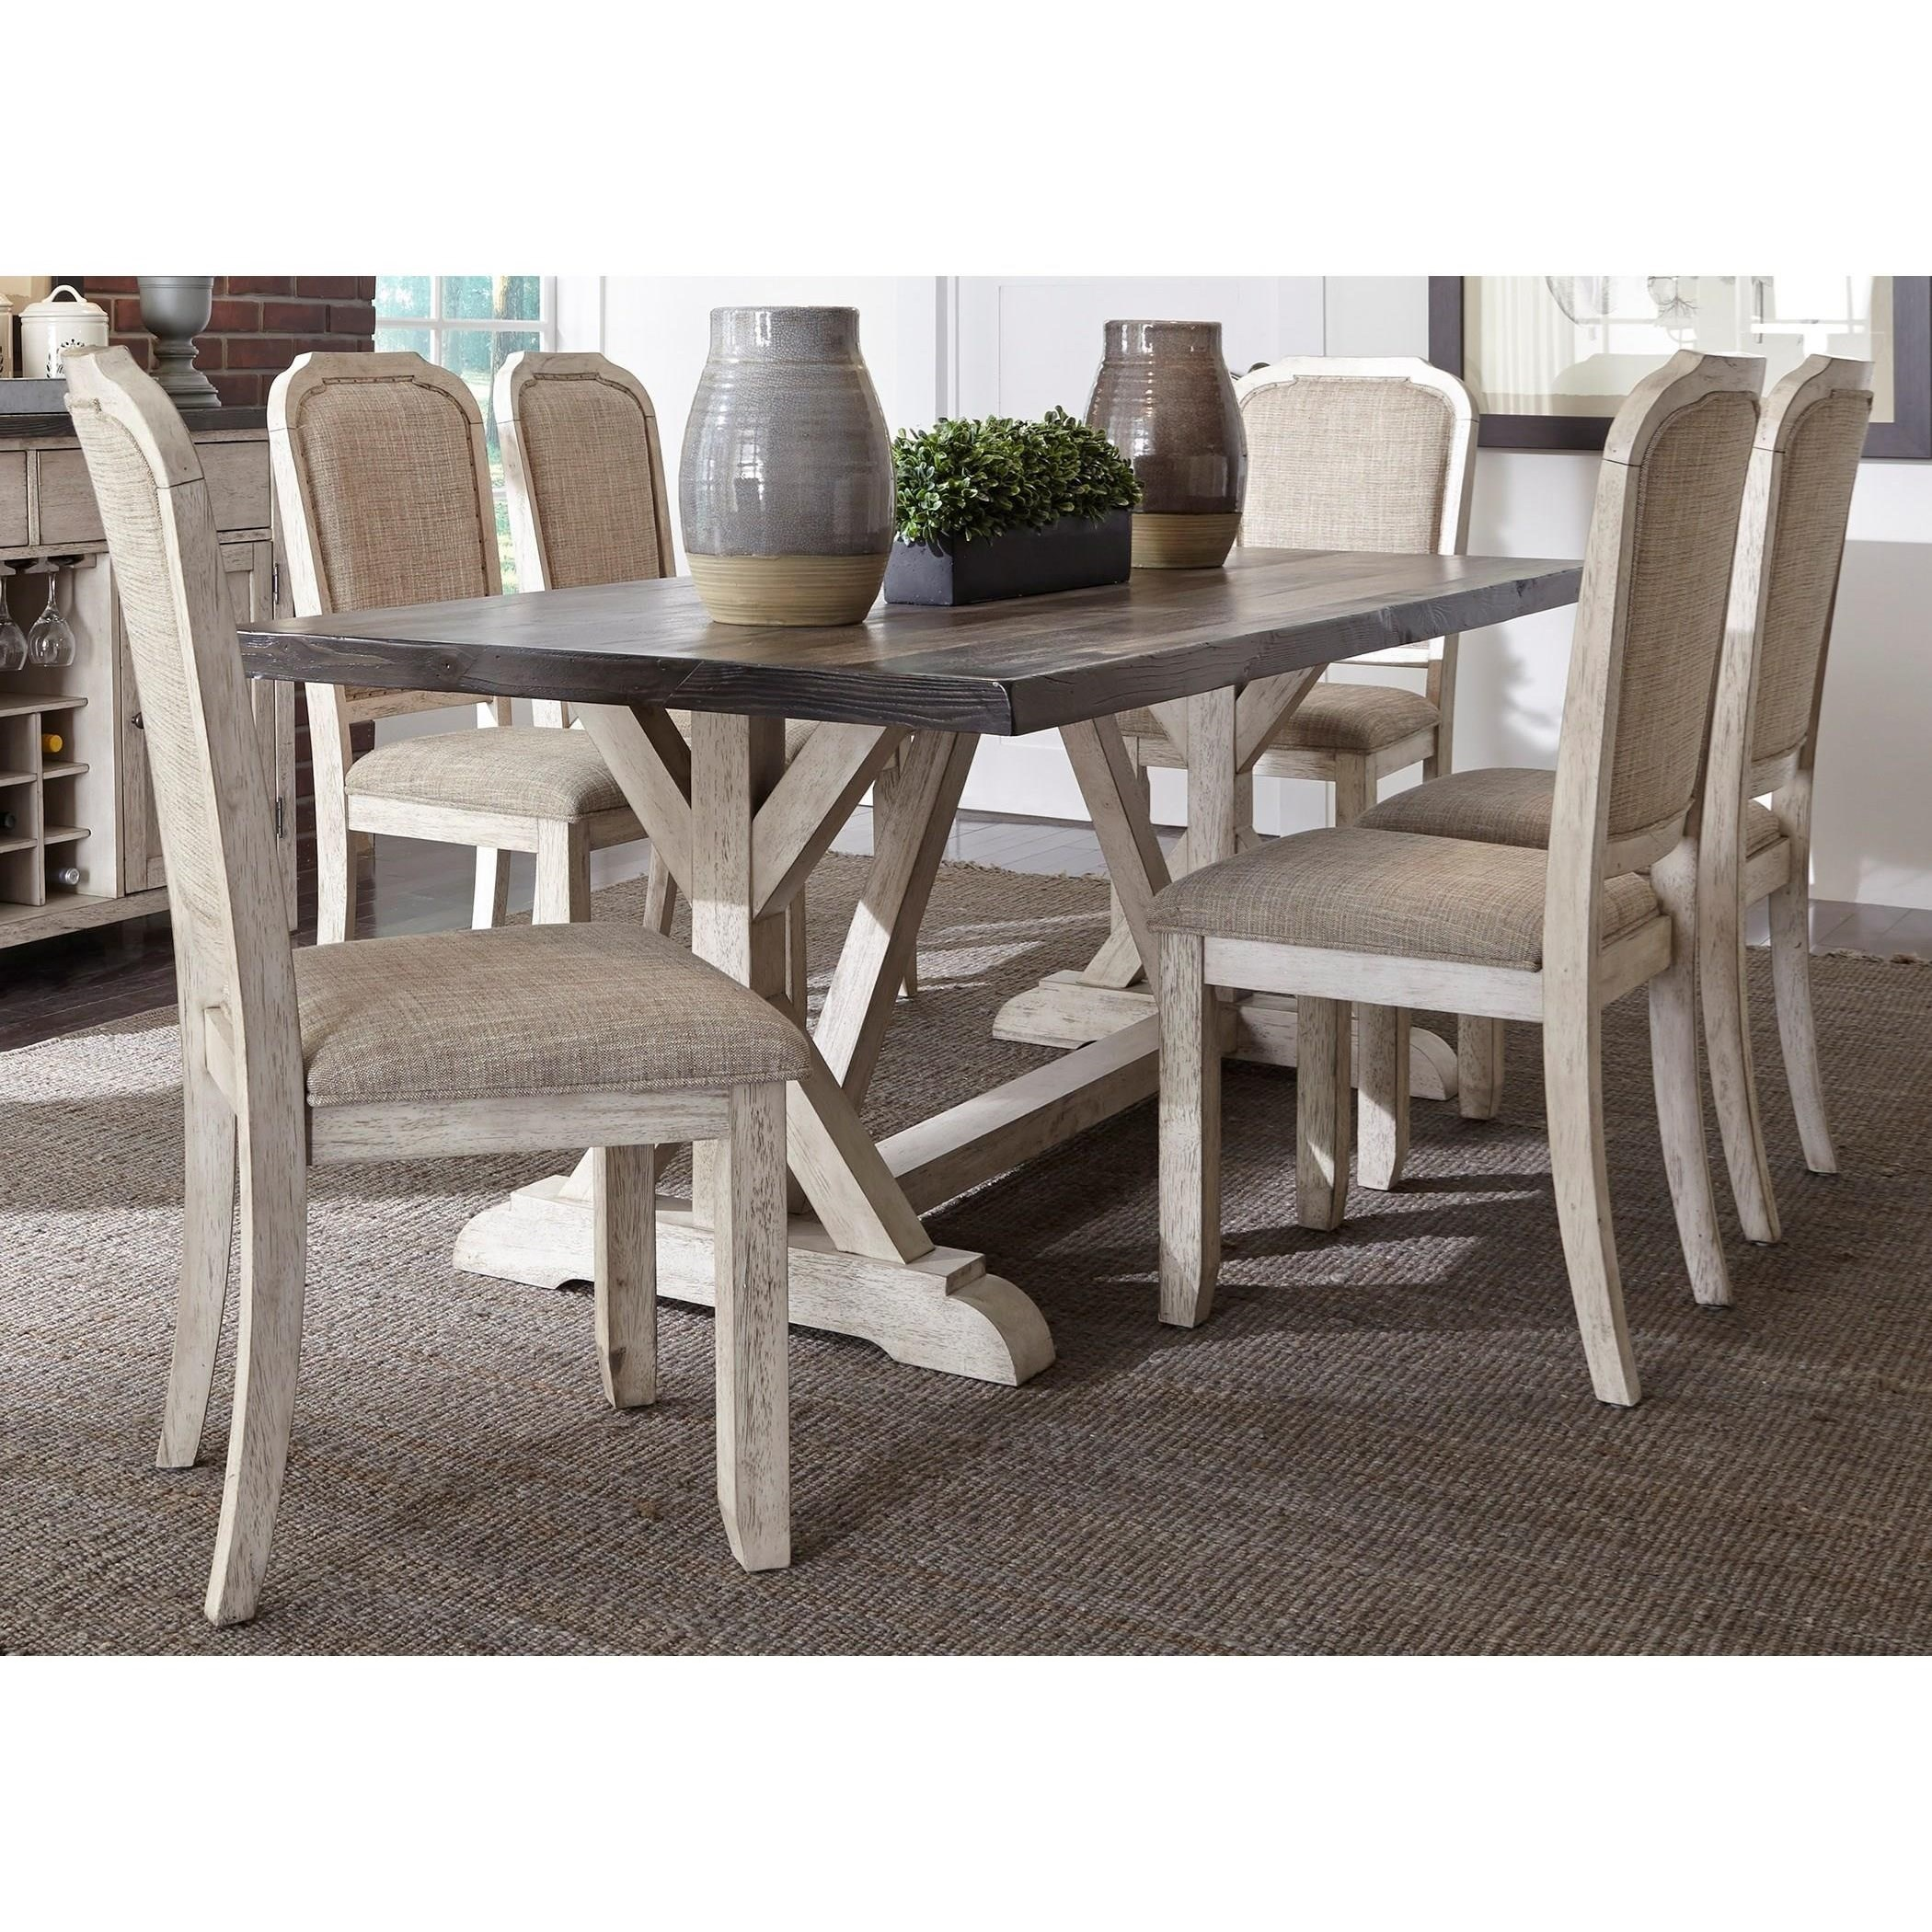 Liberty Furniture Willowrun 7 Piece Trestle Table Set   Item Number: 619 DR